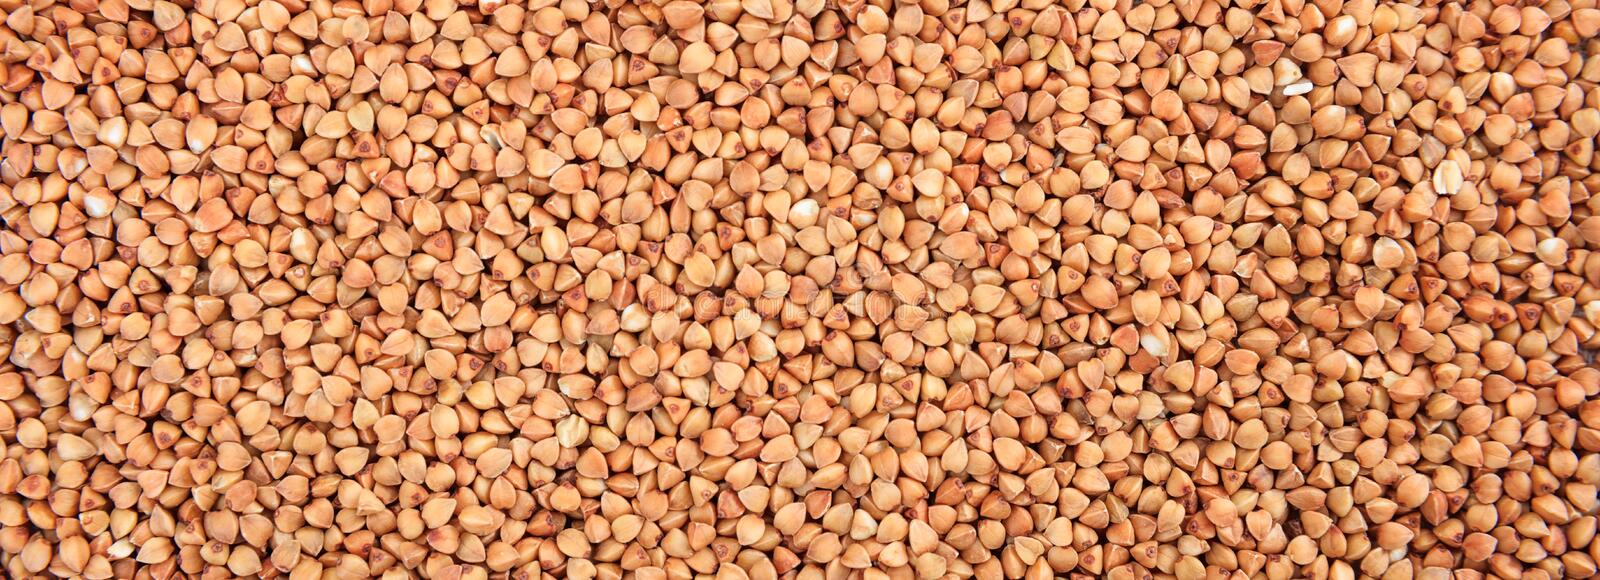 Raw buckwheat seeds full frame background, banner. Raw buckwheat dry grains full frame background, banner. Close up top view royalty free stock photos